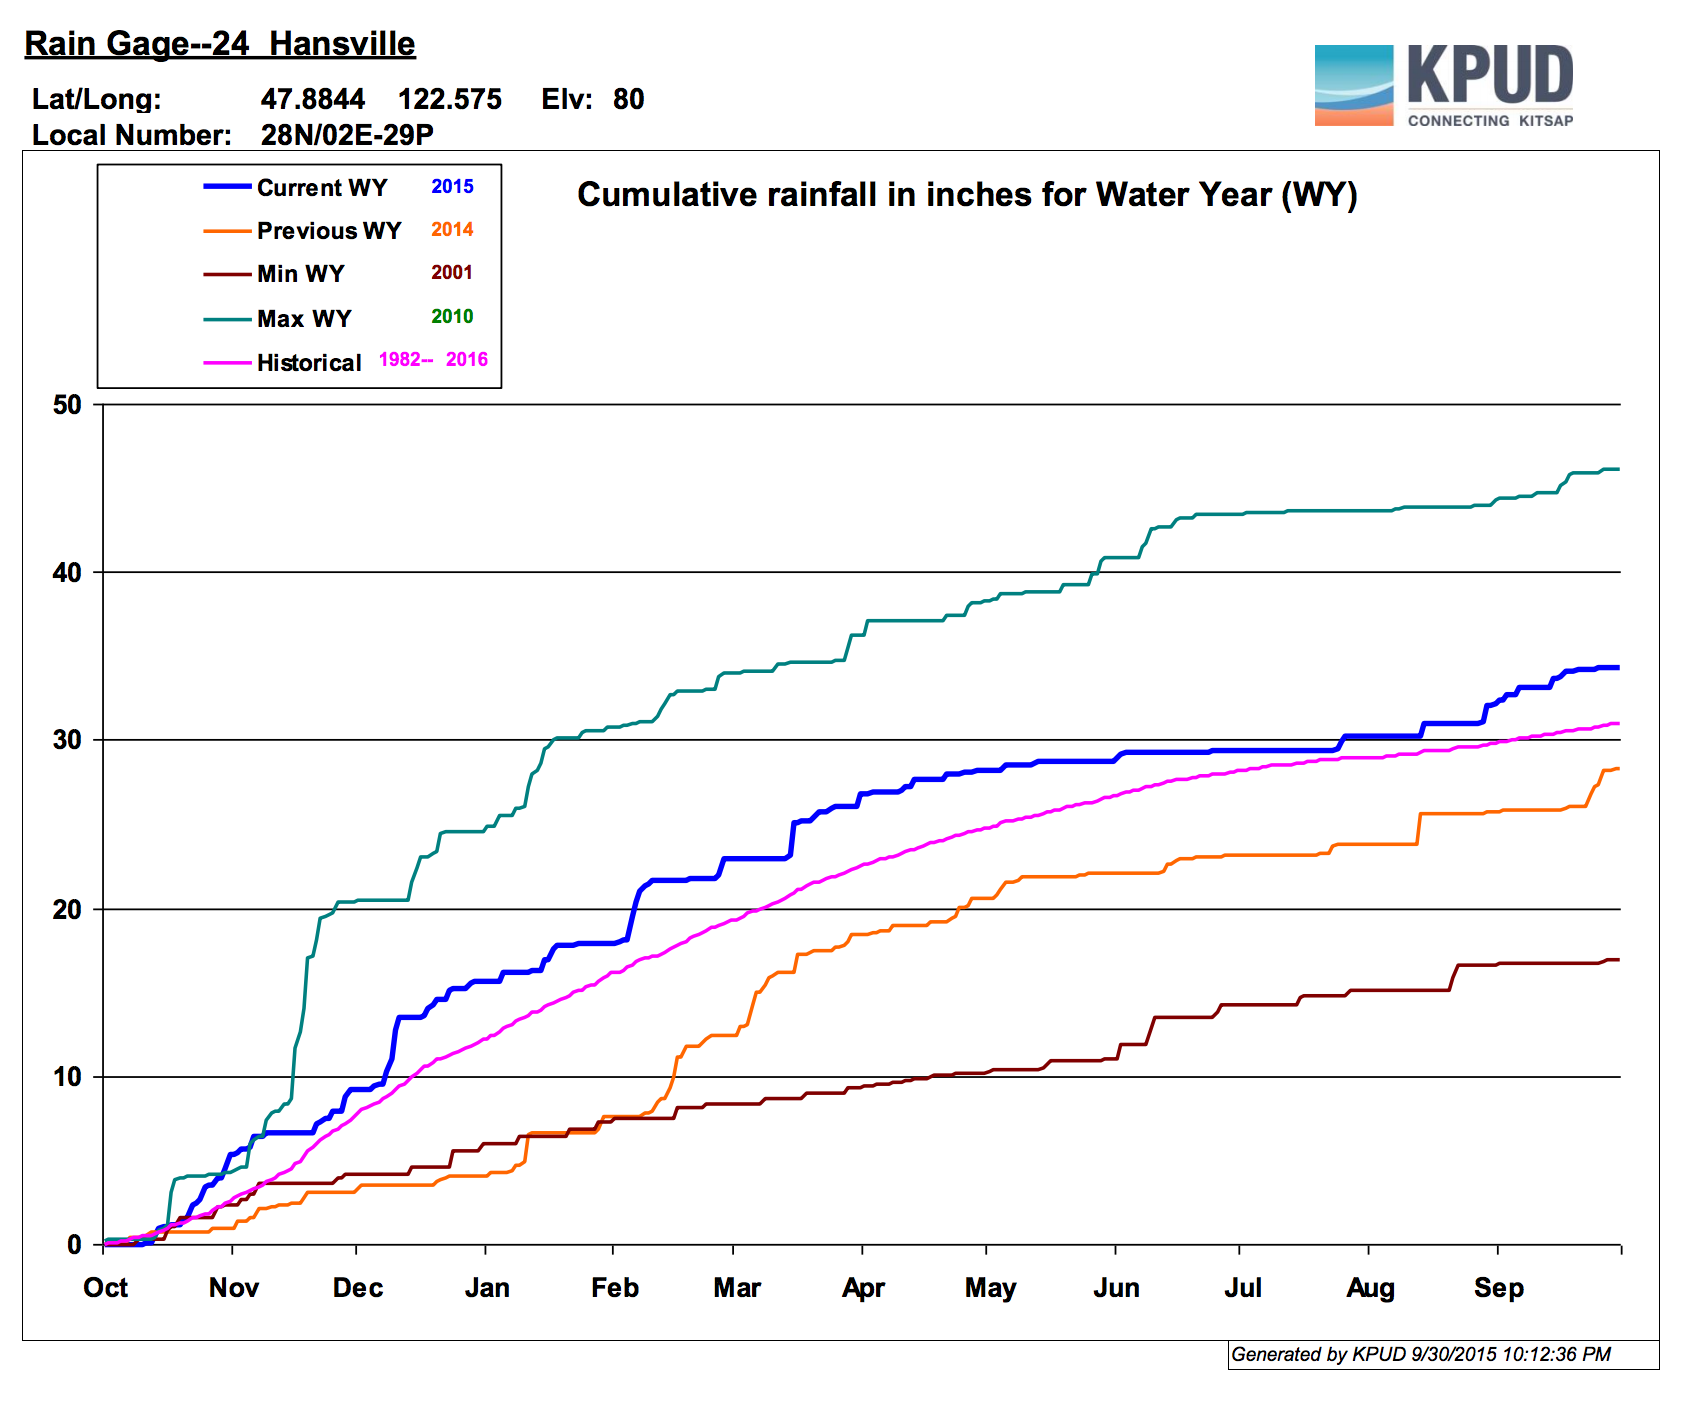 Precipitation at Hansville over the past water year.